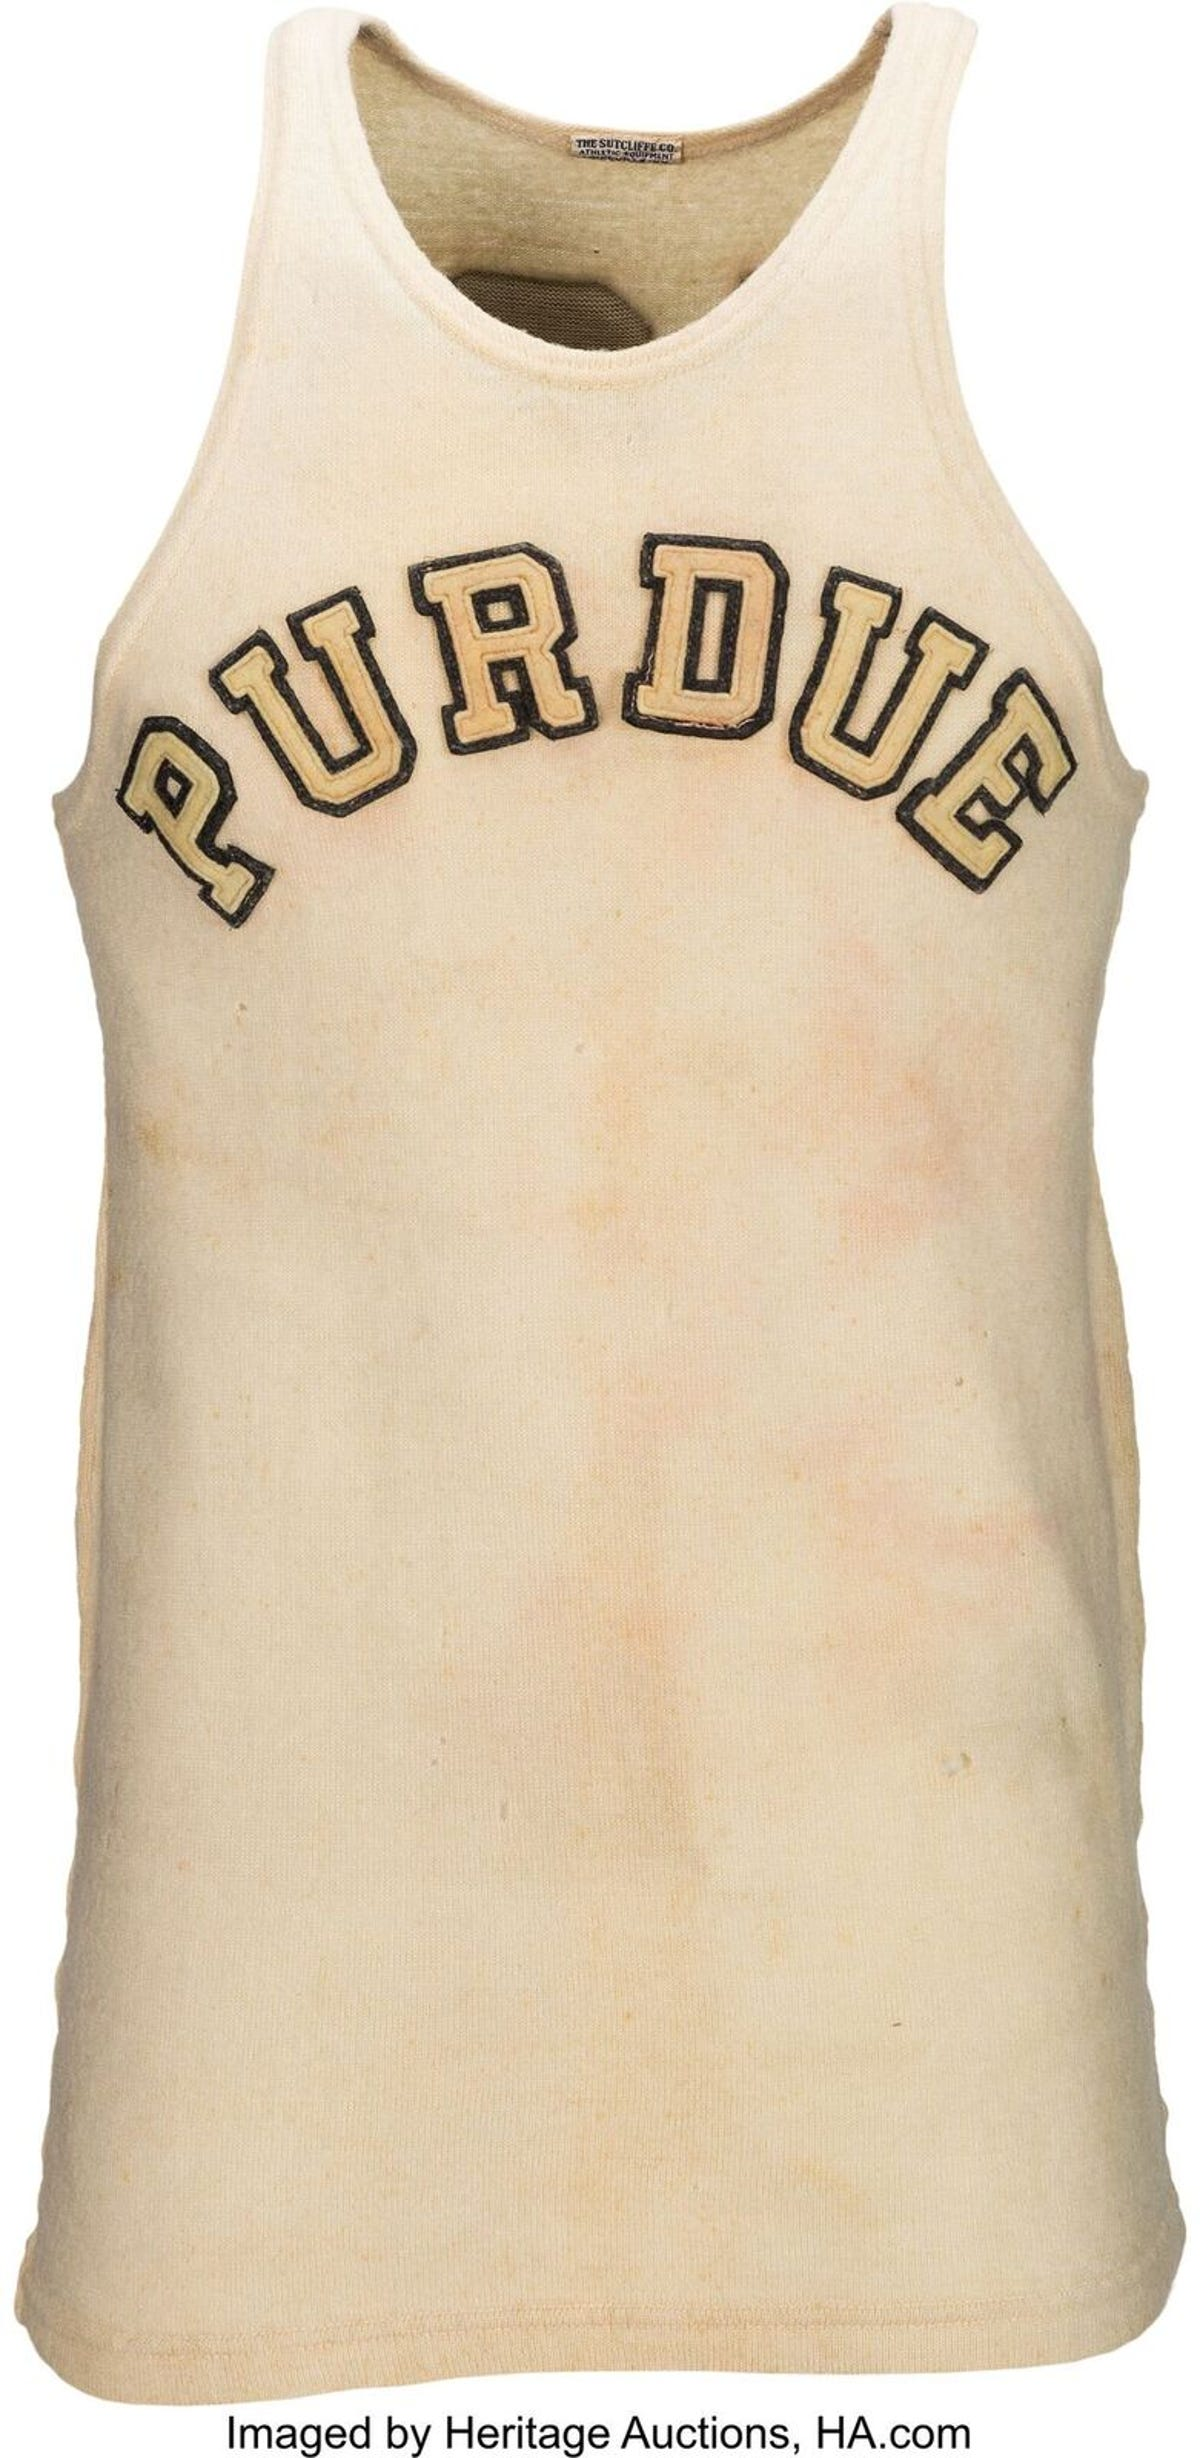 new styles 3f8d4 e7c02 Drew Brees bought rare John Wooden Purdue jersey to display ...